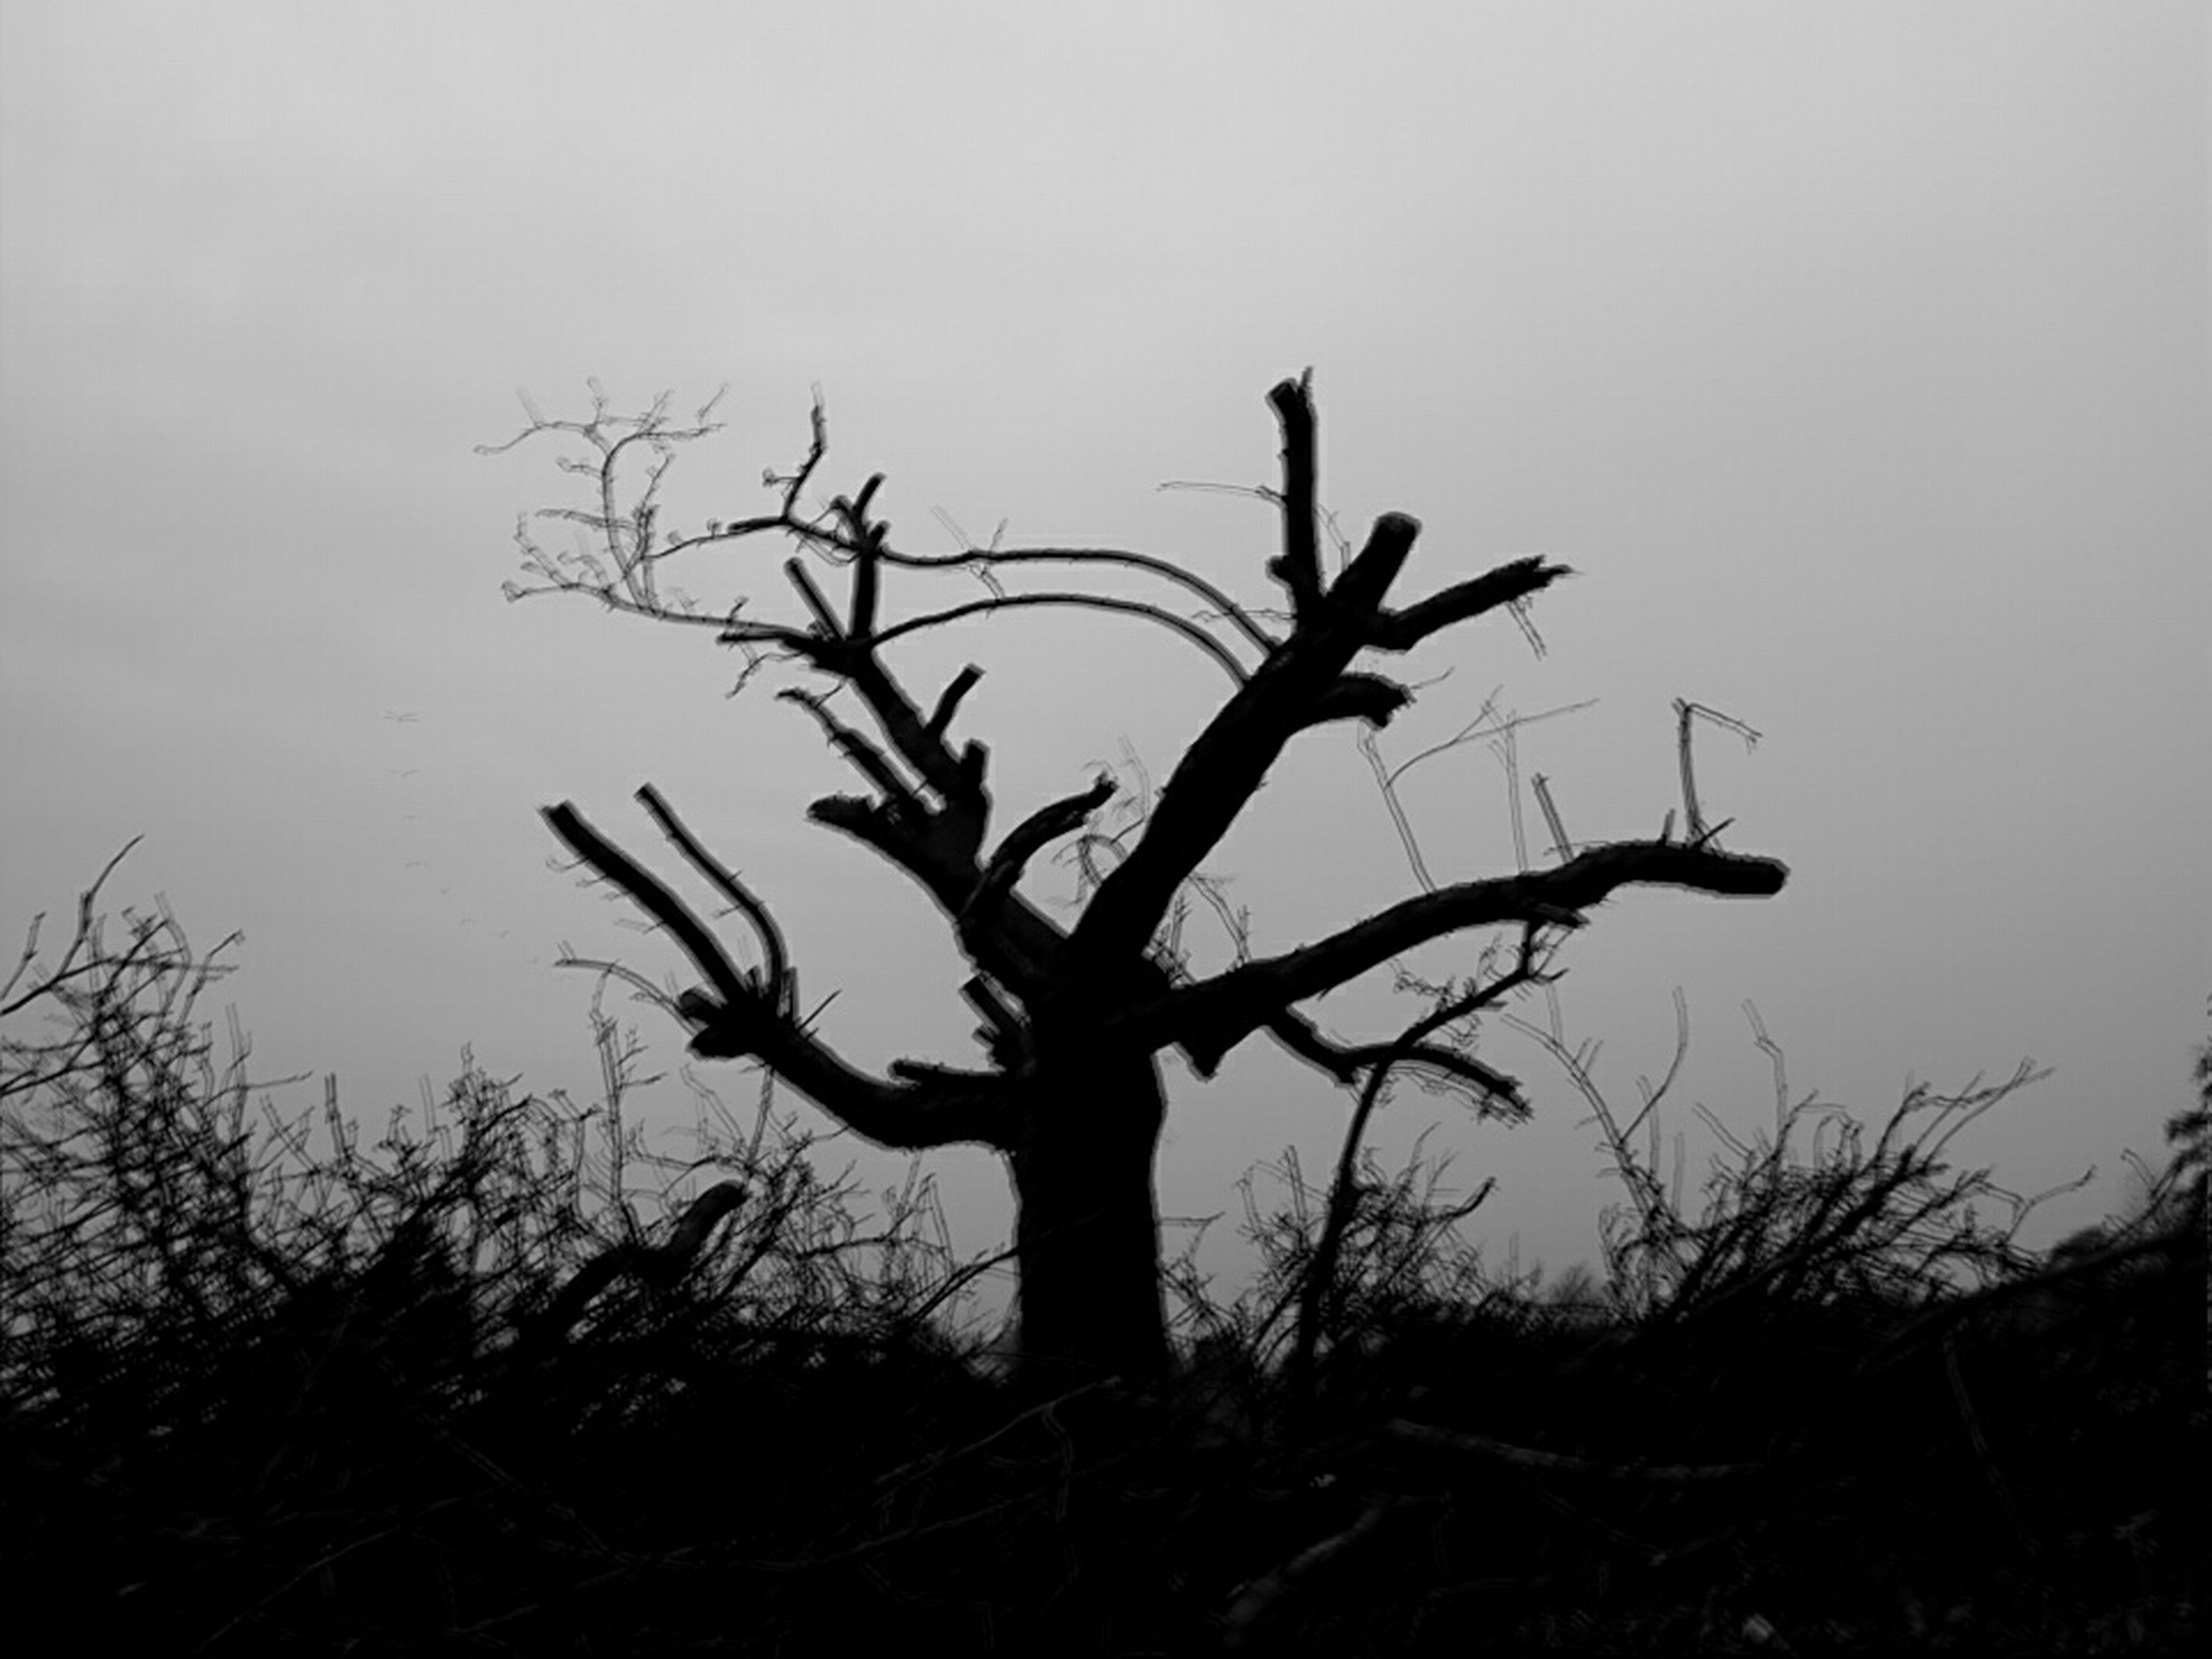 bare tree, tranquility, silhouette, branch, tranquil scene, nature, clear sky, tree, beauty in nature, scenics, sky, growth, dead plant, copy space, non-urban scene, outdoors, landscape, dusk, no people, field